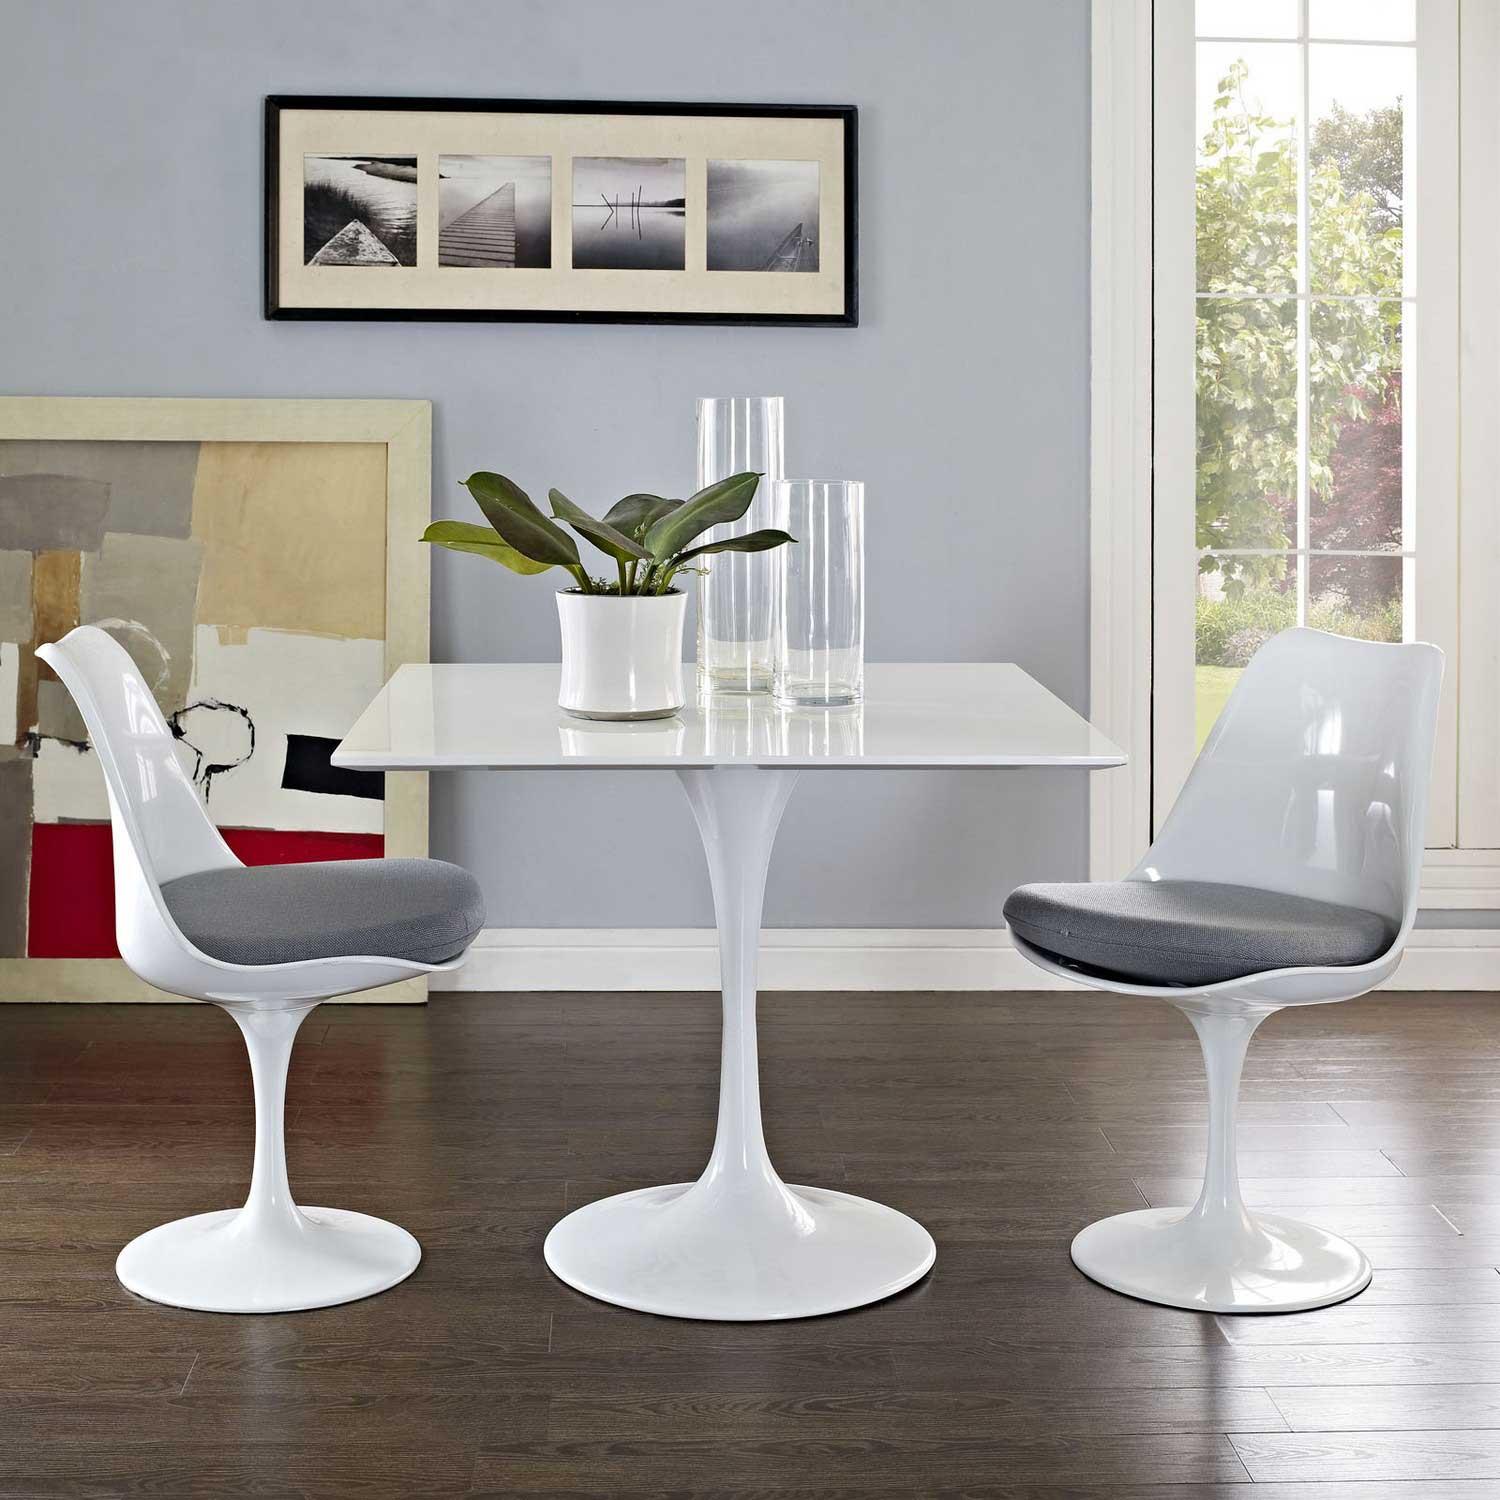 Modway Lippa 36 Square Wood Top Dining Table - White